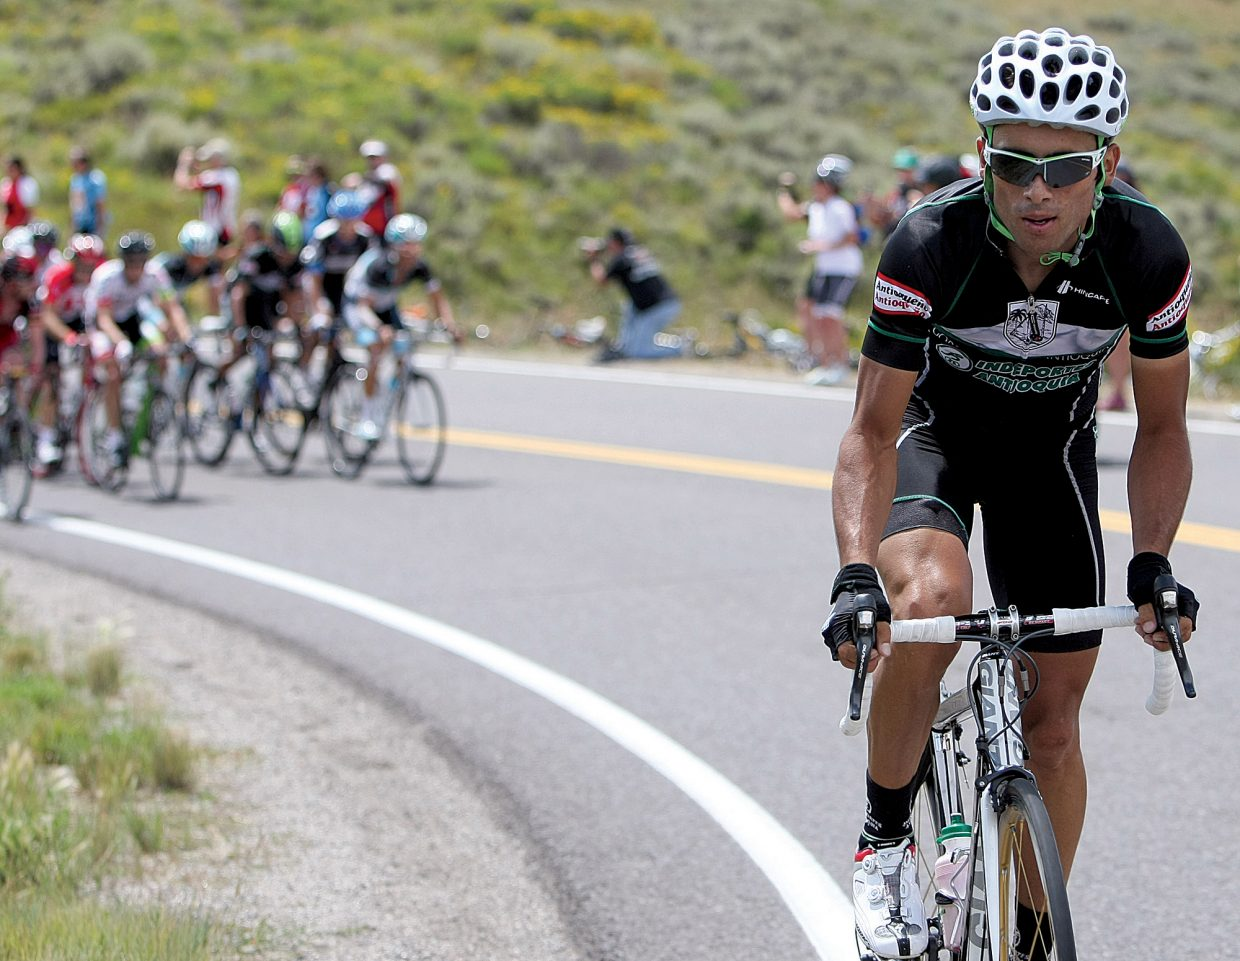 Colombian rider Janier Alexis Acevedo Colle breaks away from the peloton during the 2011 USA Pro Challenge.